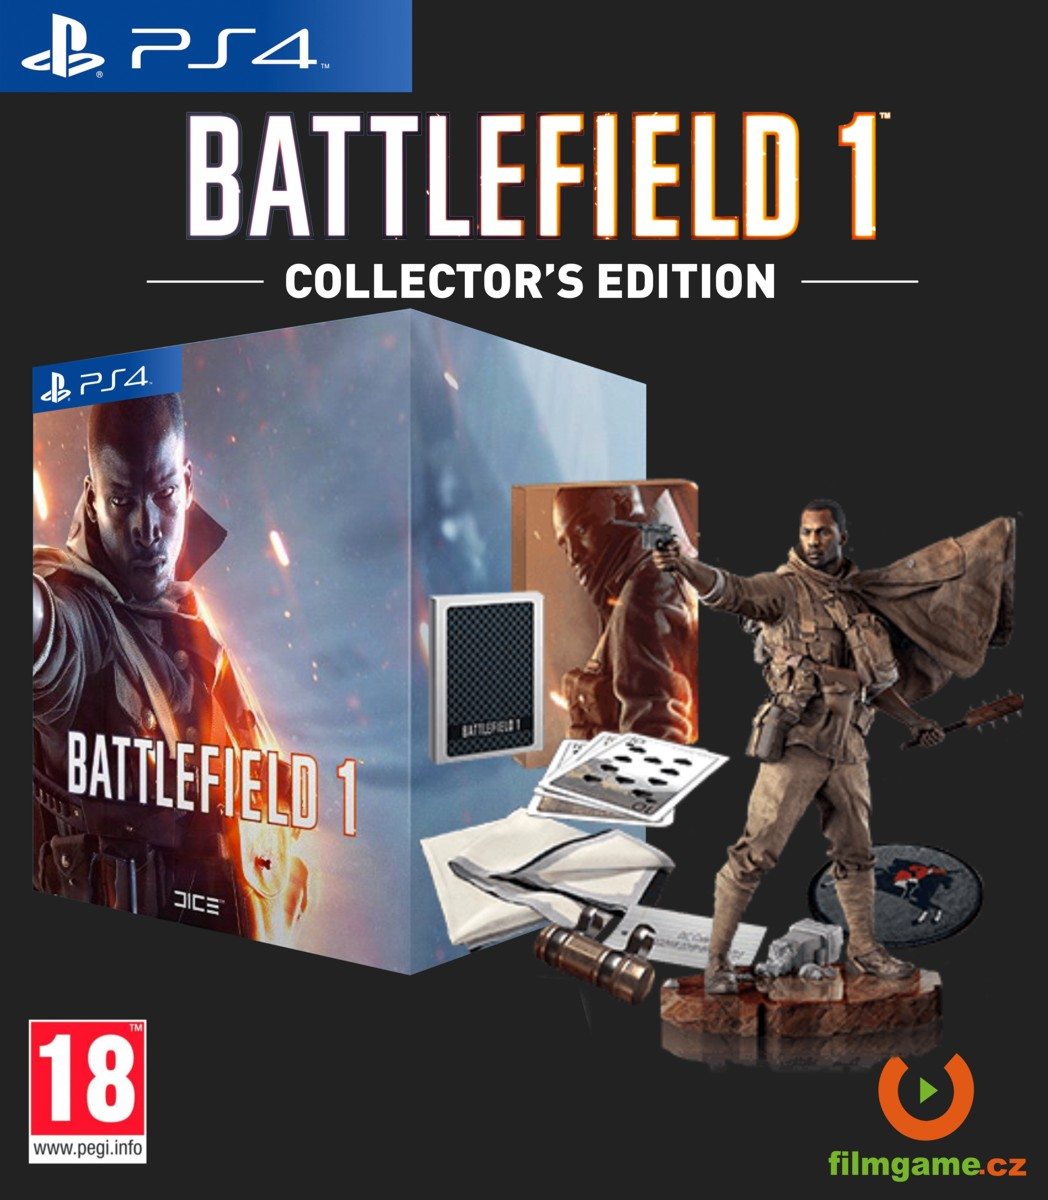 BATTLEFIELD 1 COLLECTOR'S EDITION - PS4